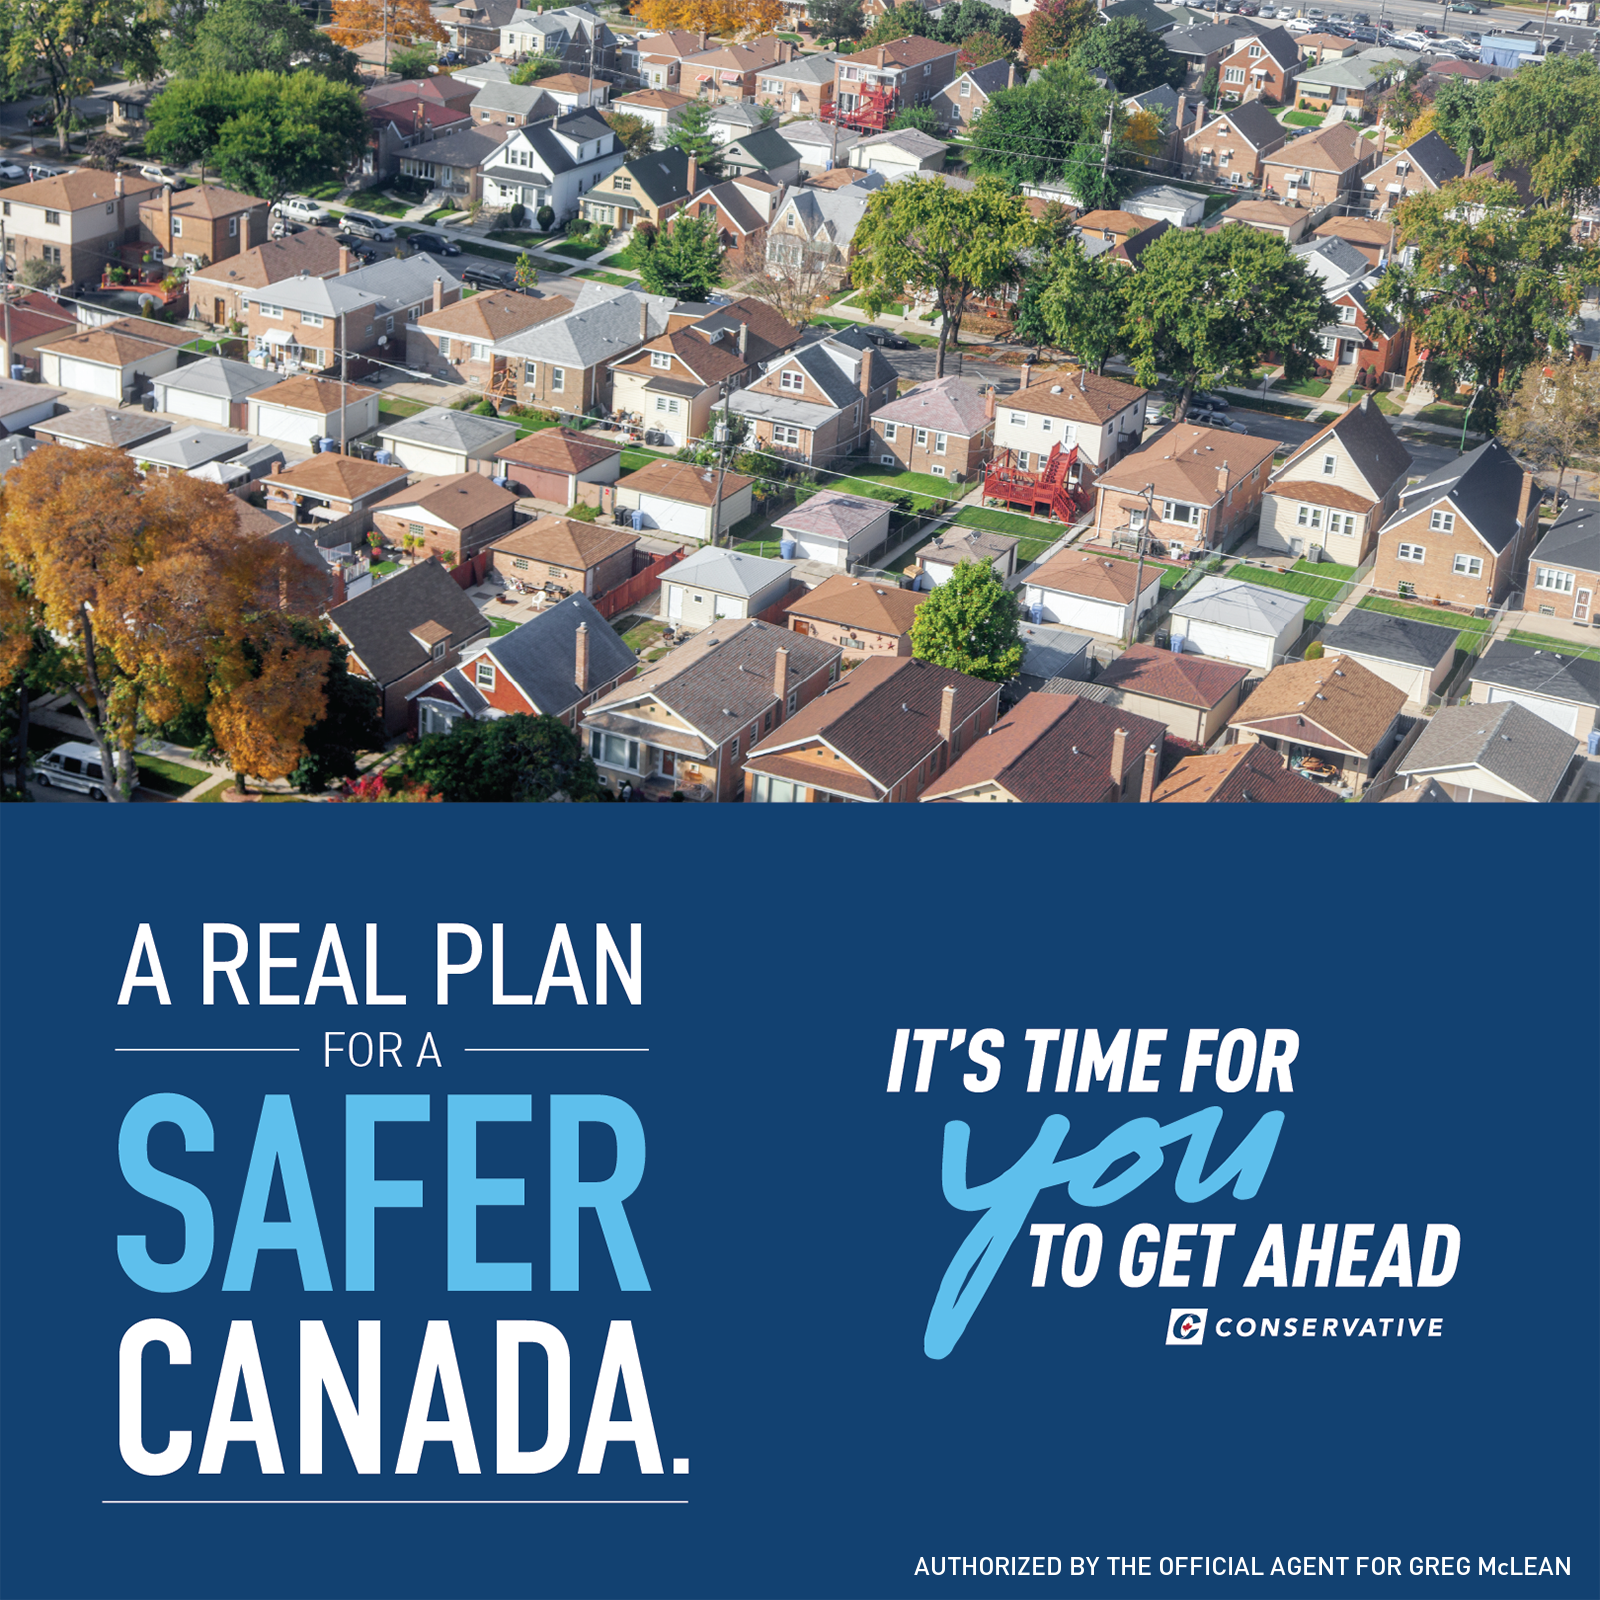 A Safer Canada - A Conservative government will protect families from gang and gun violence and keep our streets safe:· End the practice of granting automatic bail for gang members by extending reverse onus bail to all gang crime offences and to those who have previously been convicted of gang crime offences.· Revoke parole for gang members who return to associating with a gang after release.· Identify known organized crime and gang organizations in the Criminal Code, similar to the manner in which terrorist organizations are currently identified. This will spare prosecutors from repeatedly having the establish that the gang in question is a known entity with criminal intent each time a gang member is on trial.· Implement a minimum five year sentence for ordering or participating in violent criminal activity.· Strengthen background checks for gun licenses by ensuring the RCMP conducts reference checks and follows up with references.· Make possession of a smuggled firearm a criminal offence with a mandatory sentence of five years in prison.· Keep firearms out of the hands of dangerous individuals by ensuring that anyone who provides a firearm to someone who is prohibited from owning them faces up to 14 years in prison.· Create a CBSA firearms smuggling task force that will work with local law enforcement on both sides of the border to interdict smuggled guns.· Implement better information sharing processes to ensure that different police forces can more easily cooperate with each other and with the RCMP to track illegal firearms.· Deliver new funding to fight gangs, including a dedicated anti-gang fund, a police infrastructure grant program, and a youth gang prevention fund.